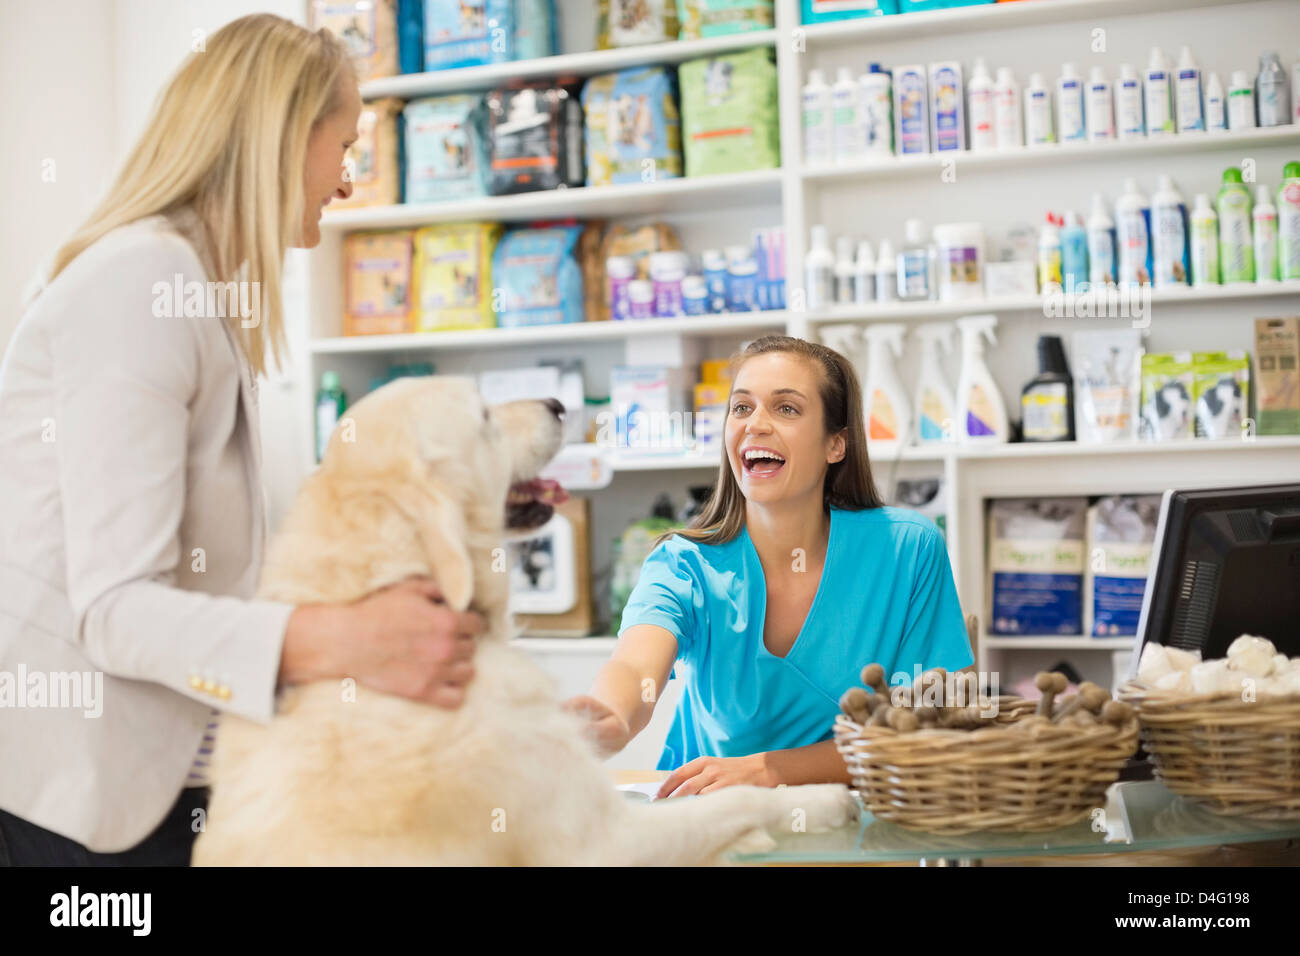 Receptionist greeting dog in vet's surgery - Stock Image